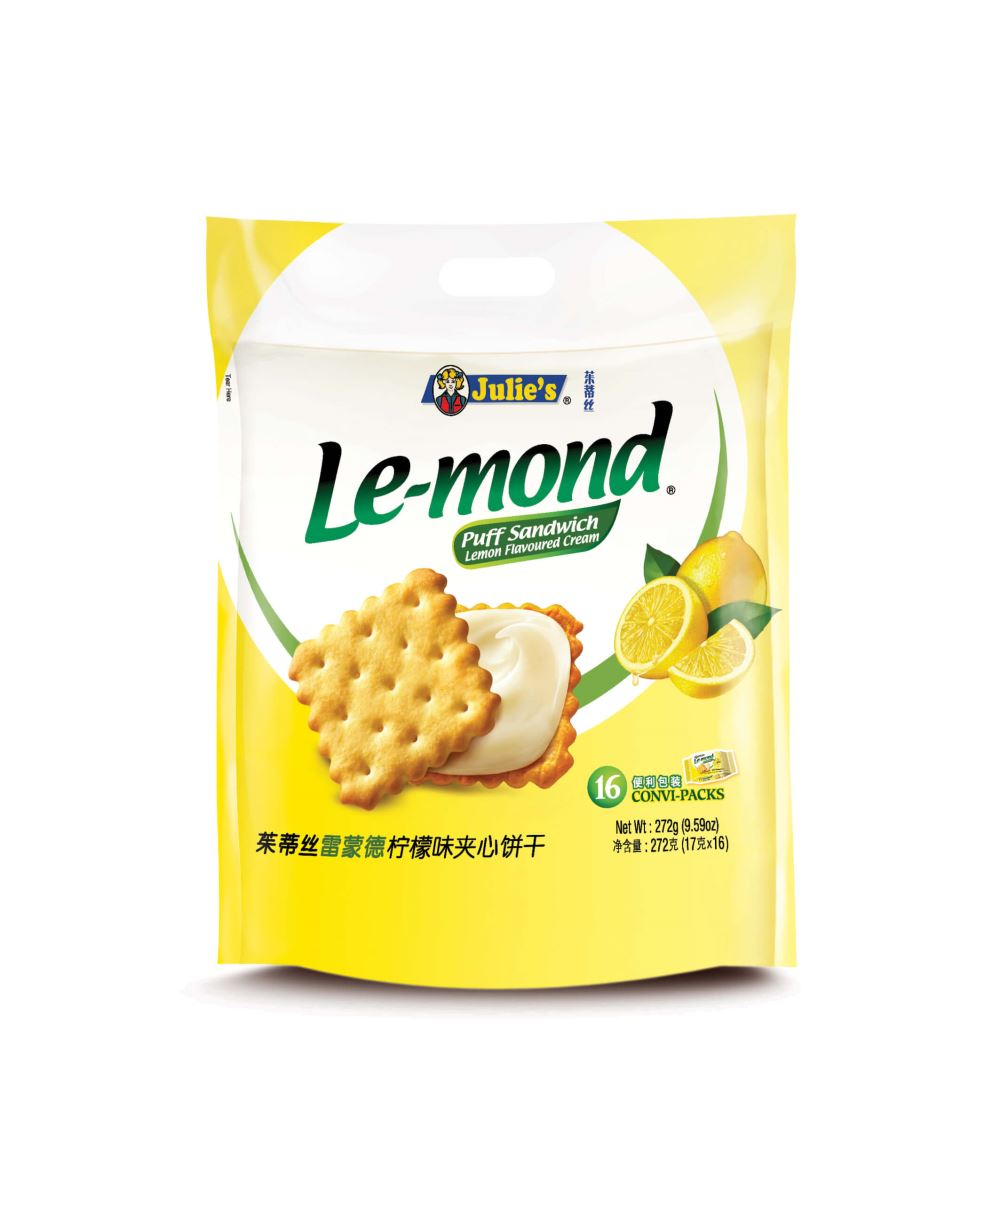 Le-Mond Puff Lemon Sandwich 272g